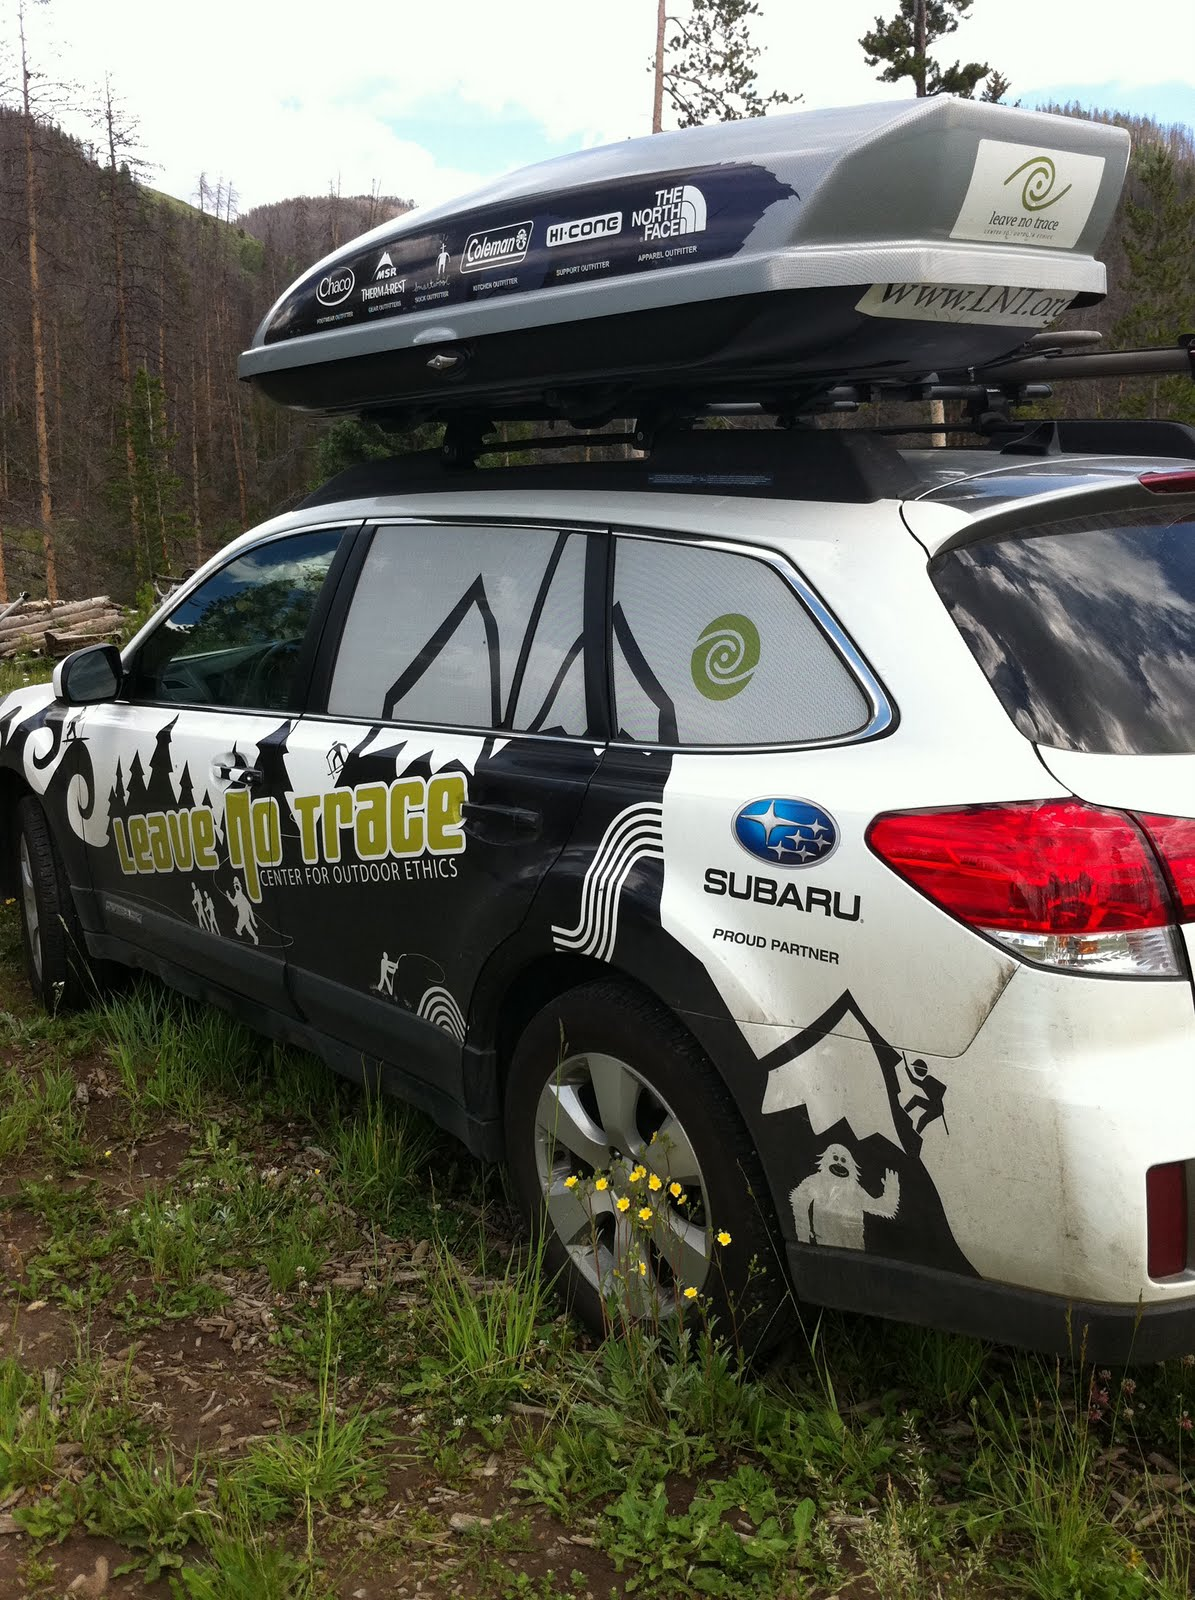 945df35ffad The Subaru Leave No Trace Traveling Trainers as well as the Leave No Trace  e-tour Team are conducting the following training events across the country  in ...